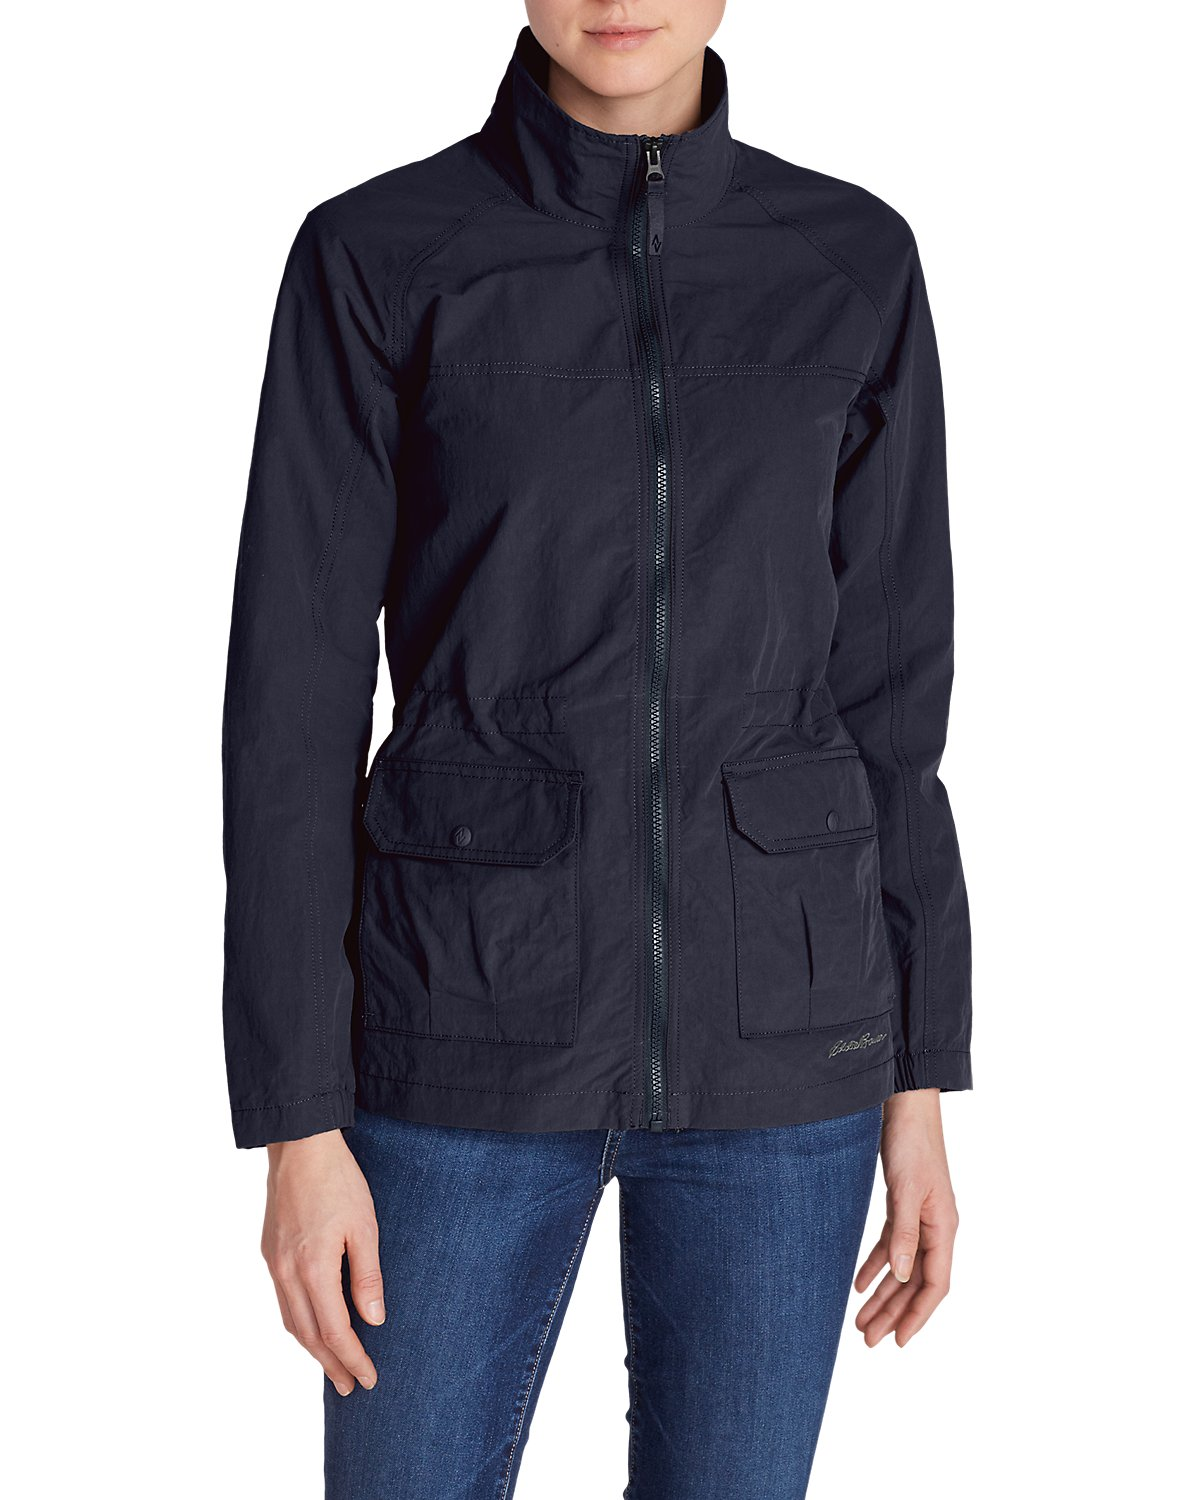 Eddie Bauer Womens Atlas Light Jacket (Several Colors)